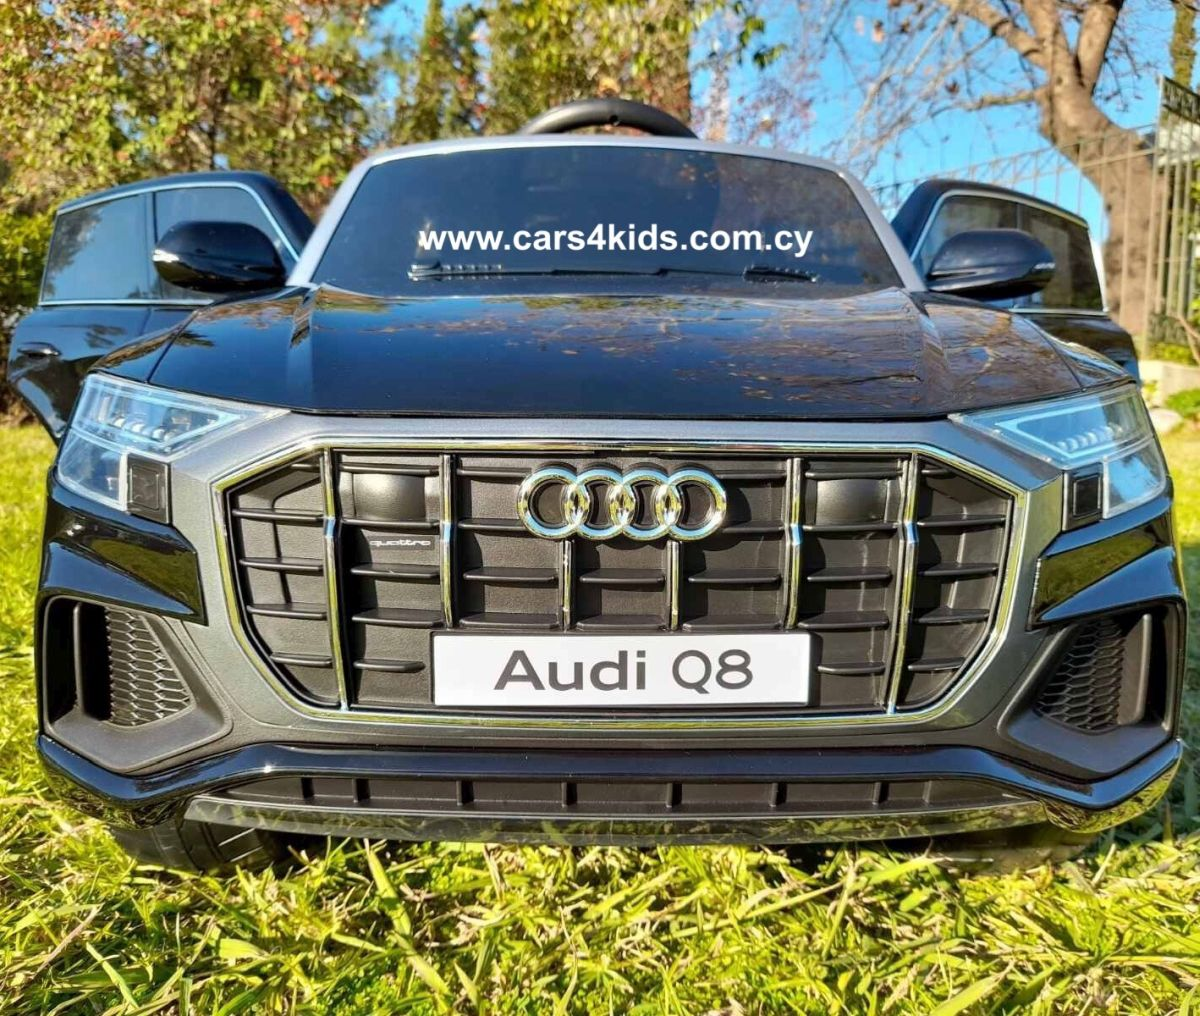 Audi Q8 Painting Black with 2.4G R/C under License